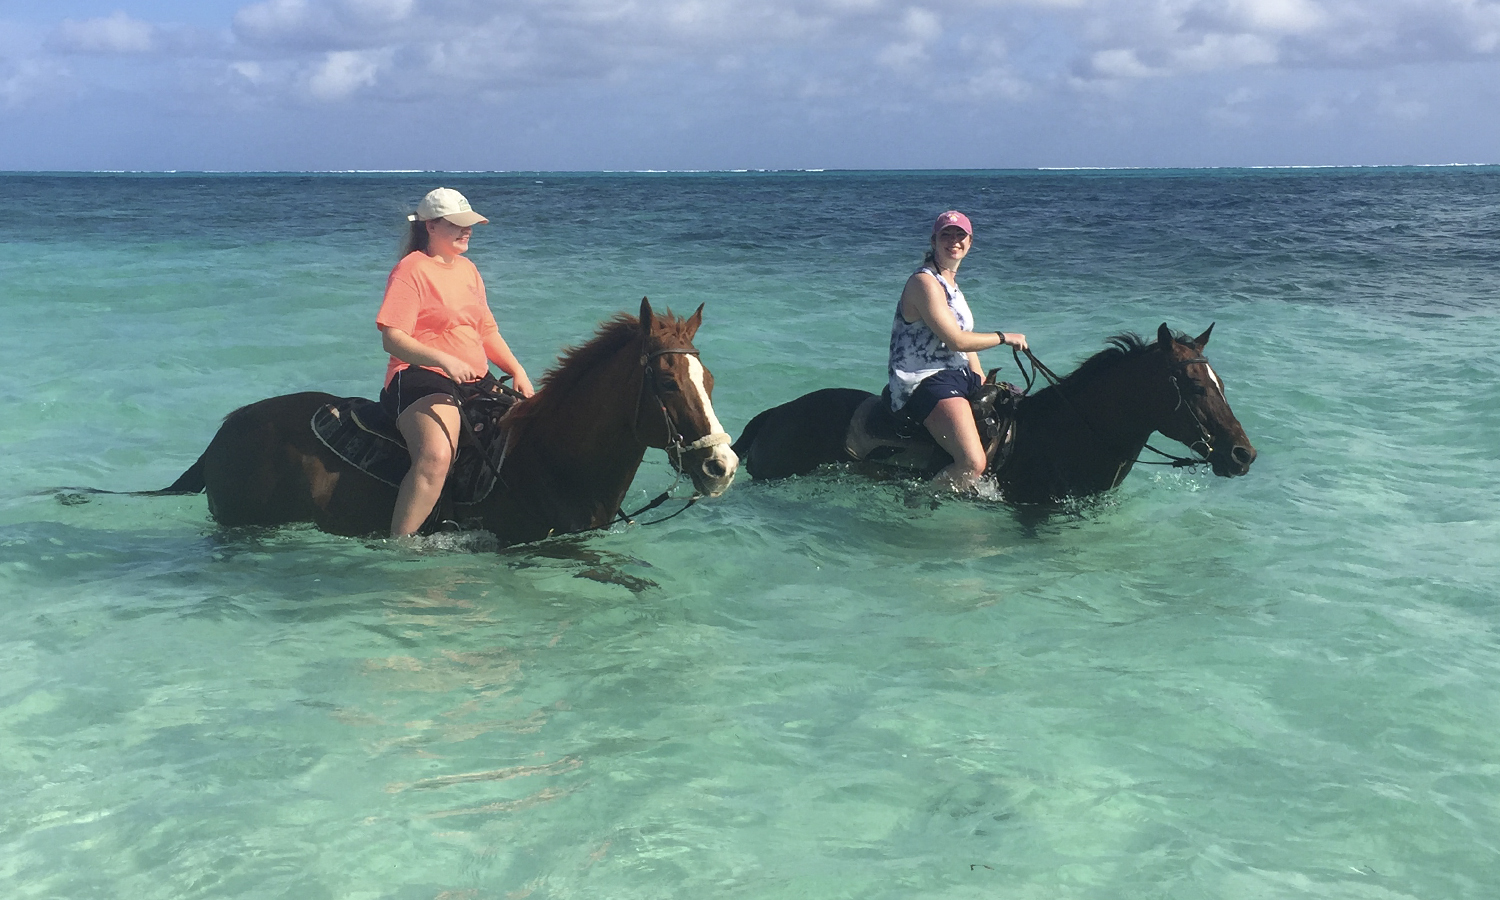 Members of the HWS Equestrian Team Sara Dolan '18 and Meghan Greco '18 ride horses in the Atlantic Ocean while on vacation in Turks and Caicos.